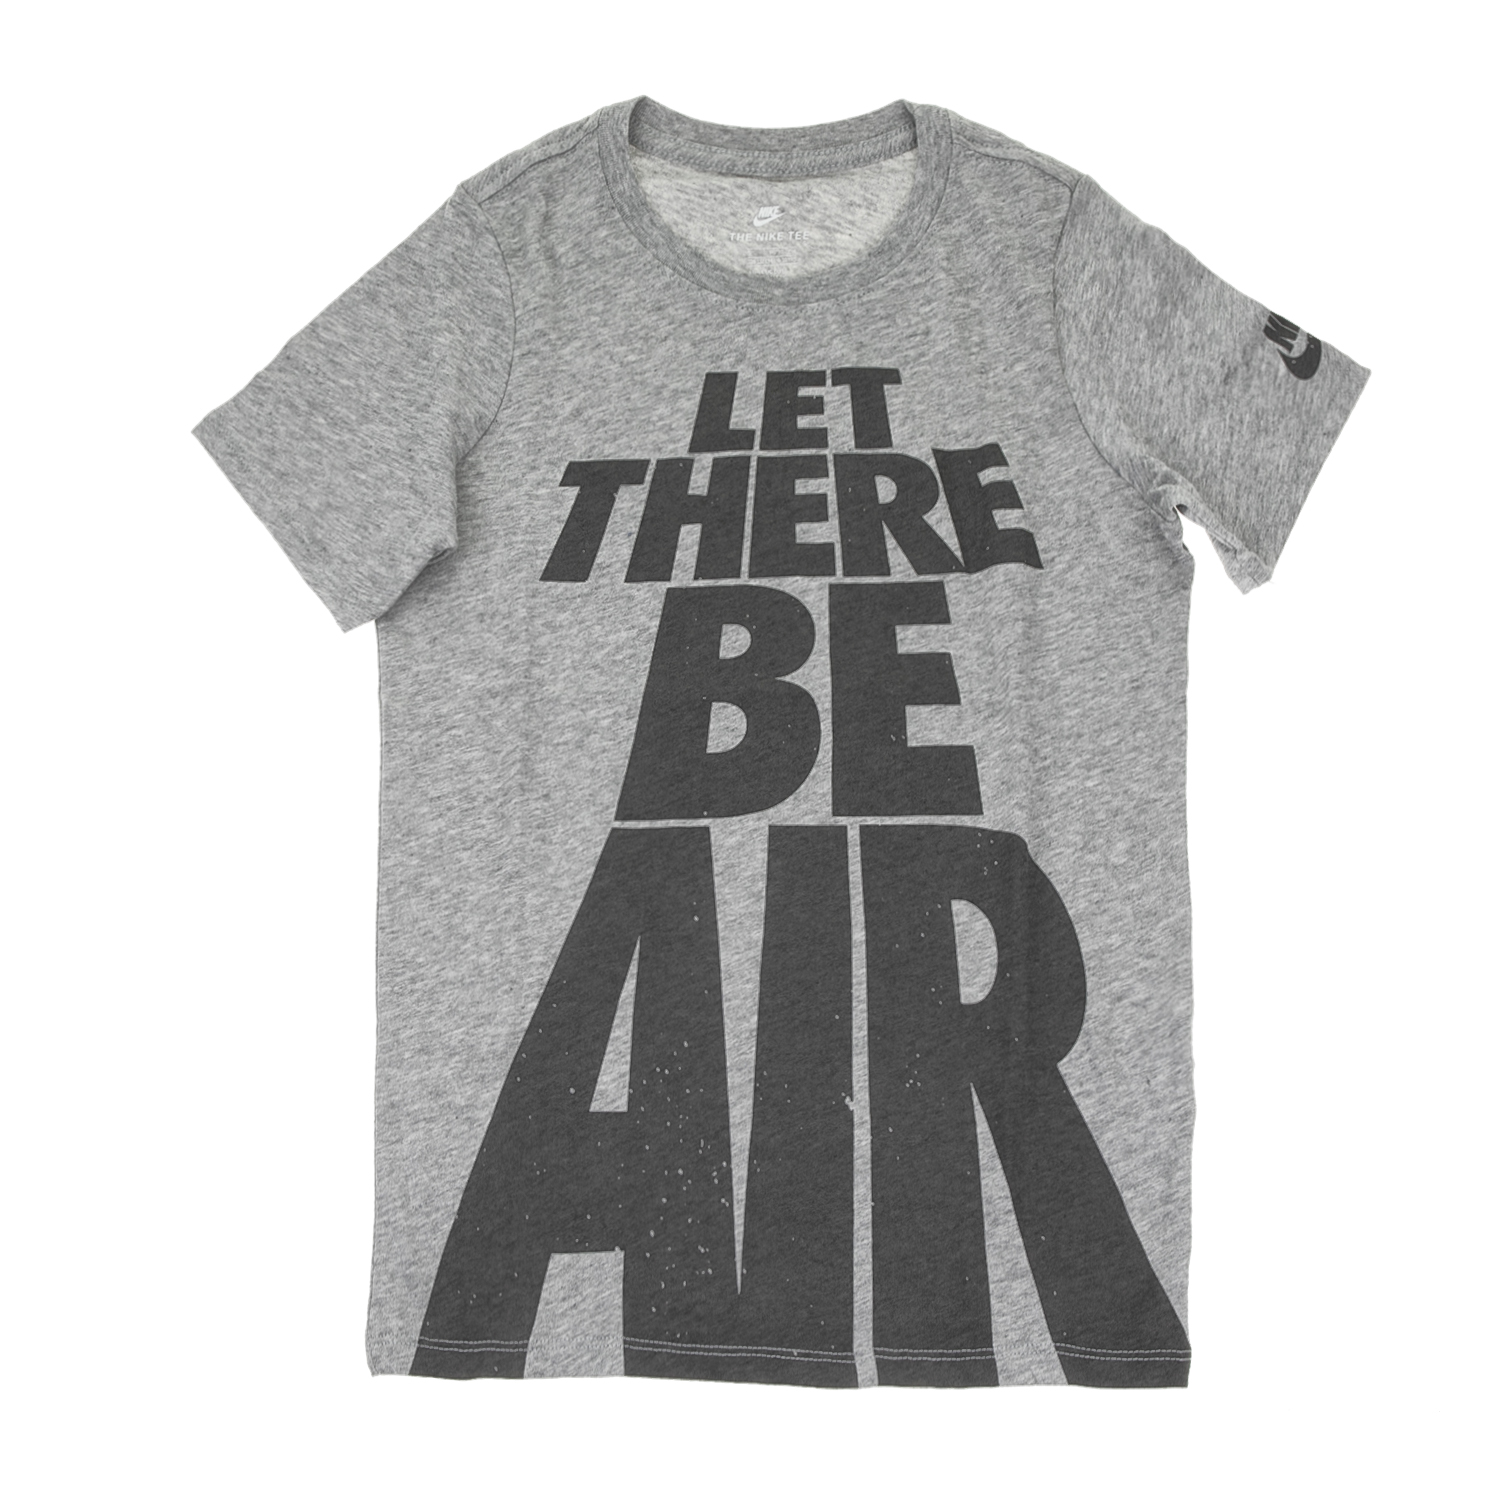 NIKE - Παιδικό αγορίστικο t-shirt NIKE LET THERE BE AIR γκρι παιδικά boys ρούχα μπλούζες